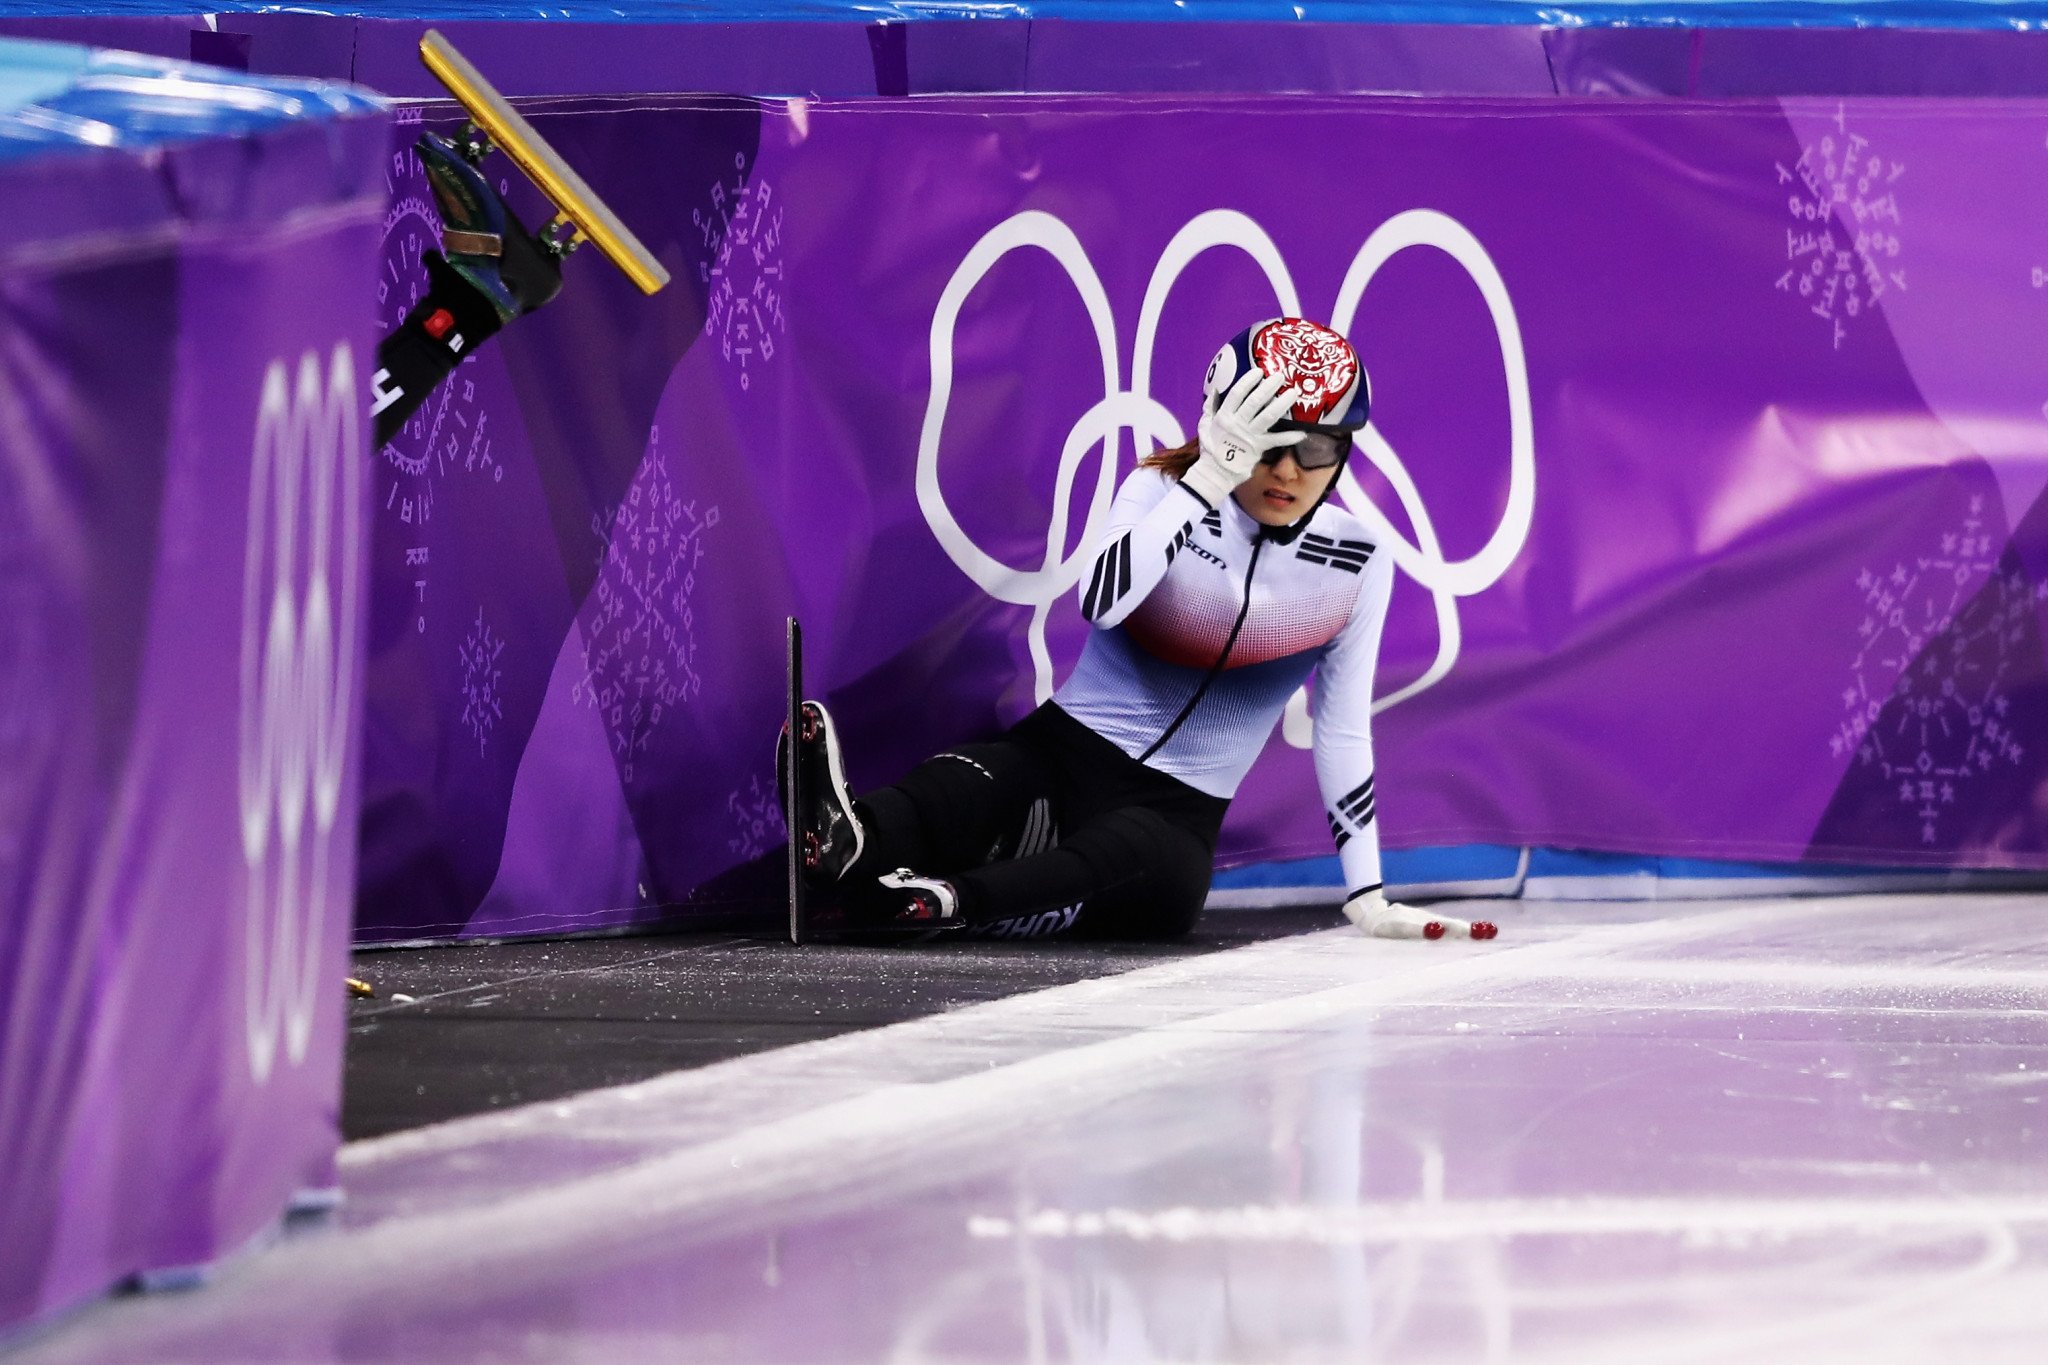 Shim Suk-hee claimed a fall she had during the Pyeongchang 2018 Winter Olympic Games was caused by a concussion given to her by Cho Jae-beom ©Getty Images